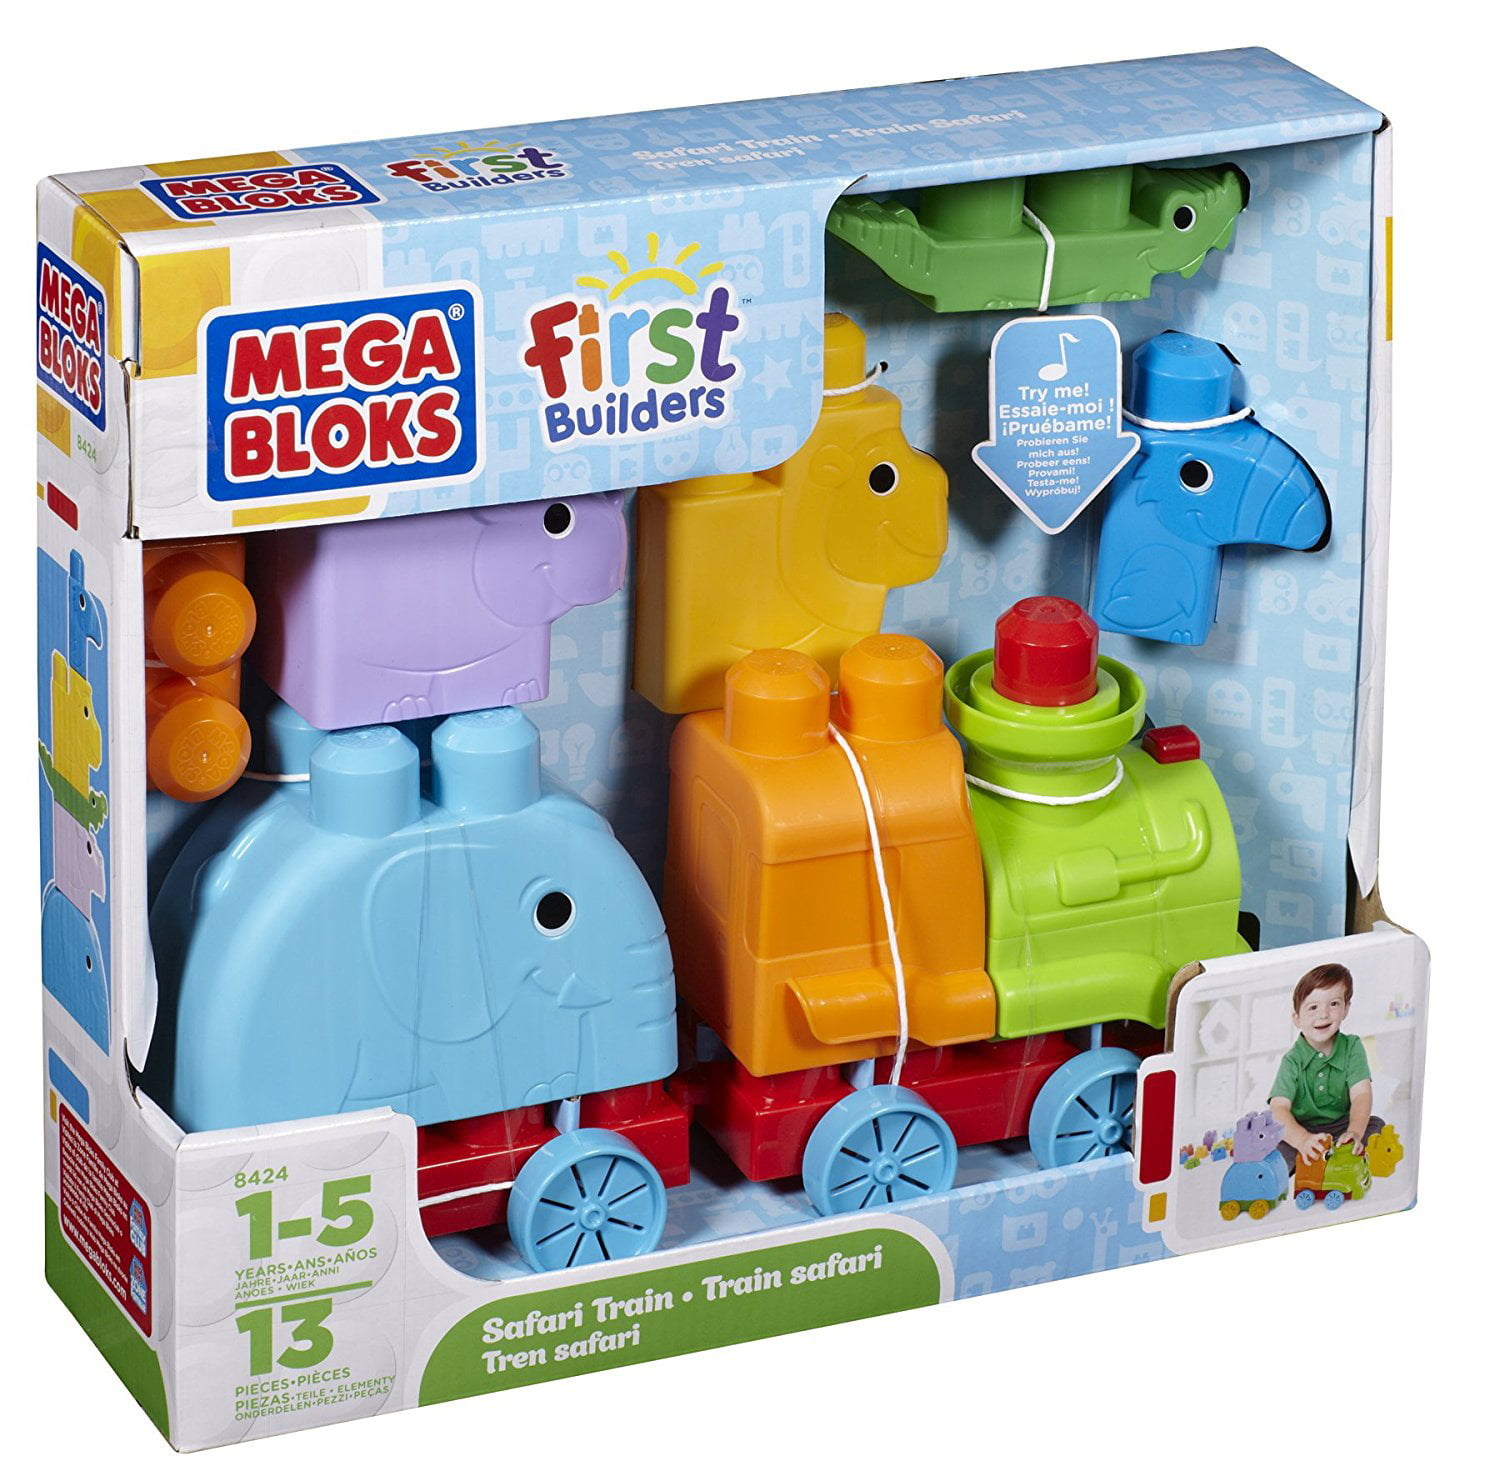 Mega Bloks First Builders Animal Safari Train Play Set by Mega Bloks